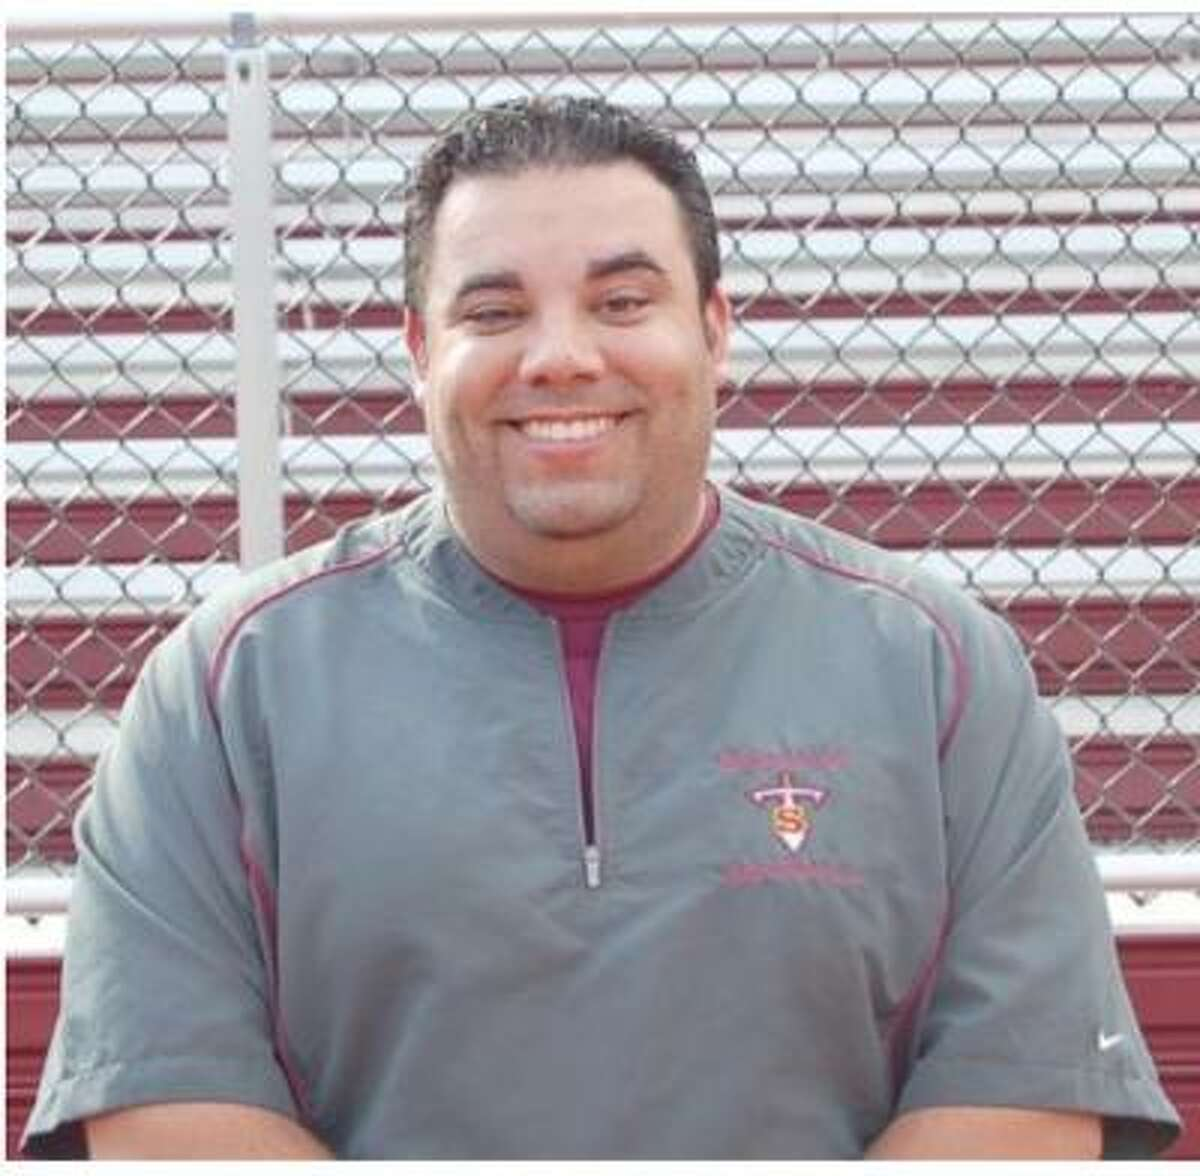 Sources say Sheehan High School offensive coordinator Gaitan Rodriguez has been chosen by Torrington High School to be their head coach. The decision is pending approval from an eight-person Torrington committee. Photo by files.leagueathletics.com